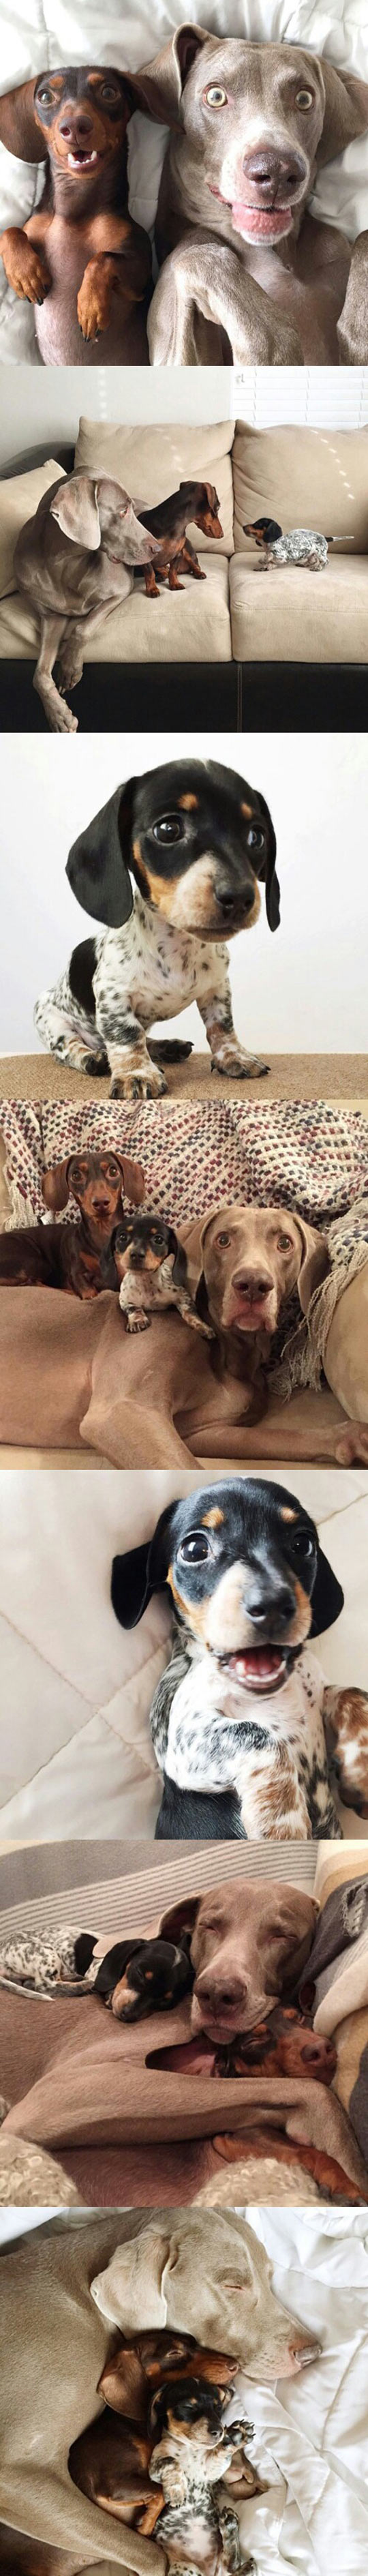 funny-dog-friends-bed